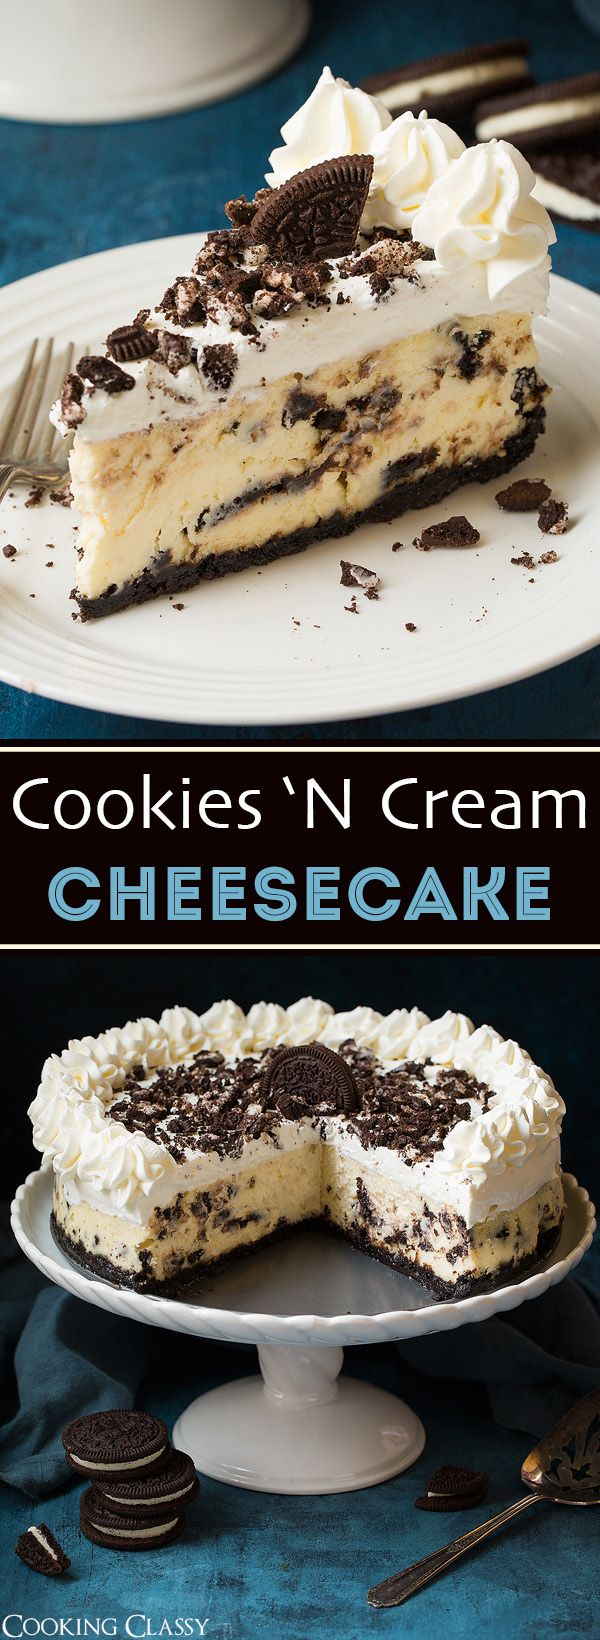 Oreo Cheesecake (Always a Crowd Favorite!) - Cooking Classy